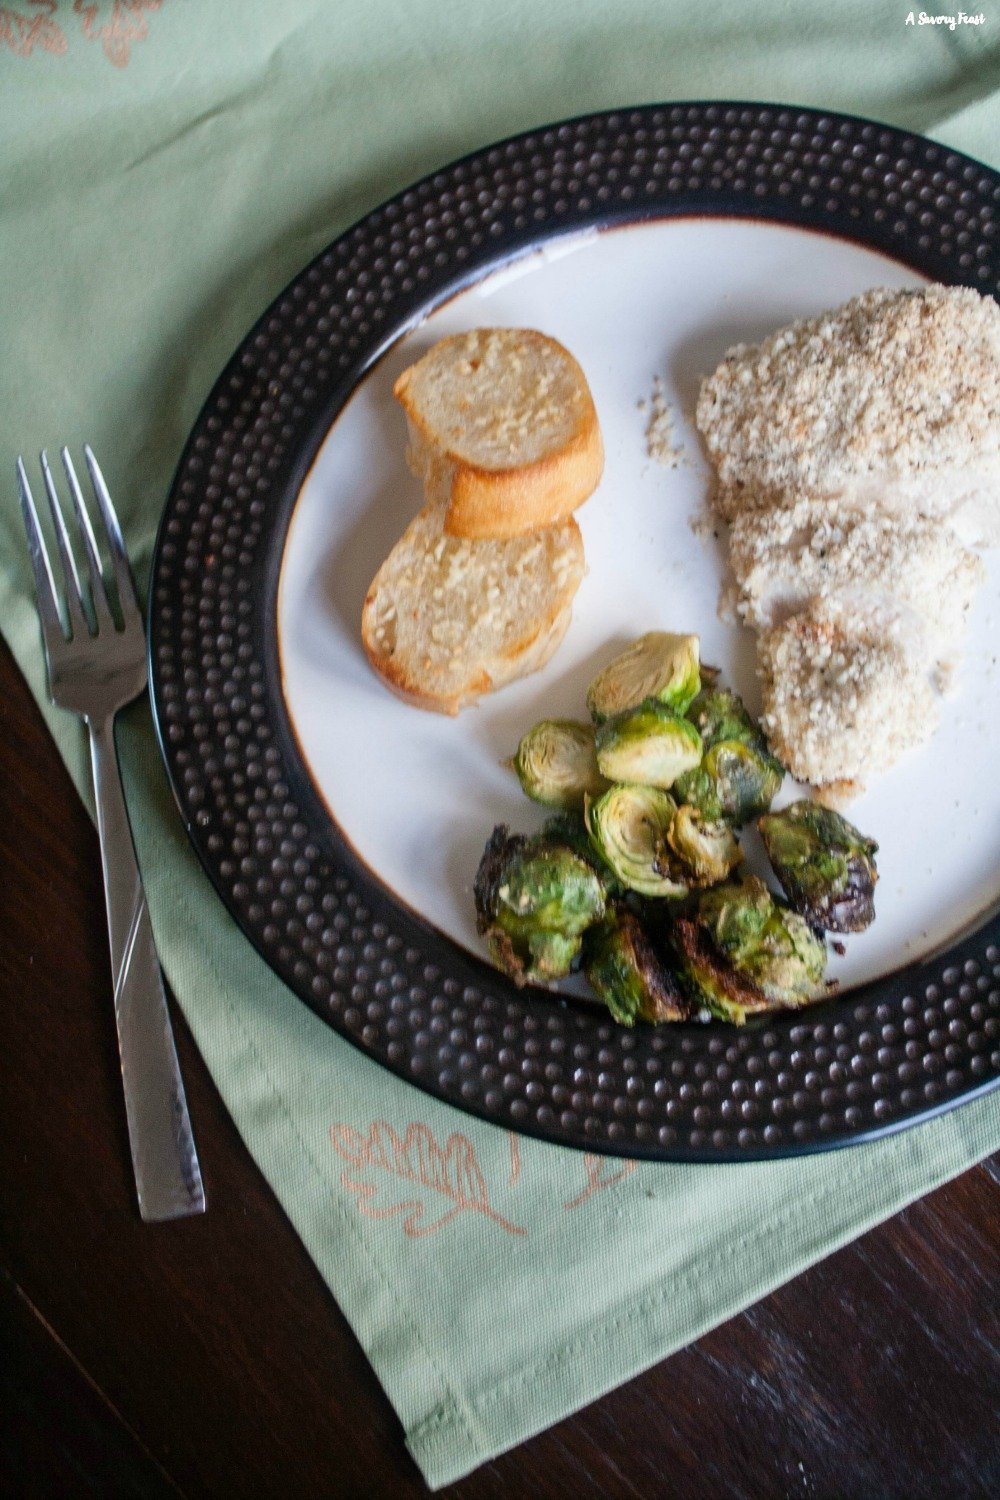 Try this healthier twist on a favorite dinner recipe tonight. Greek Yogurt Parmesan Crusted Chicken